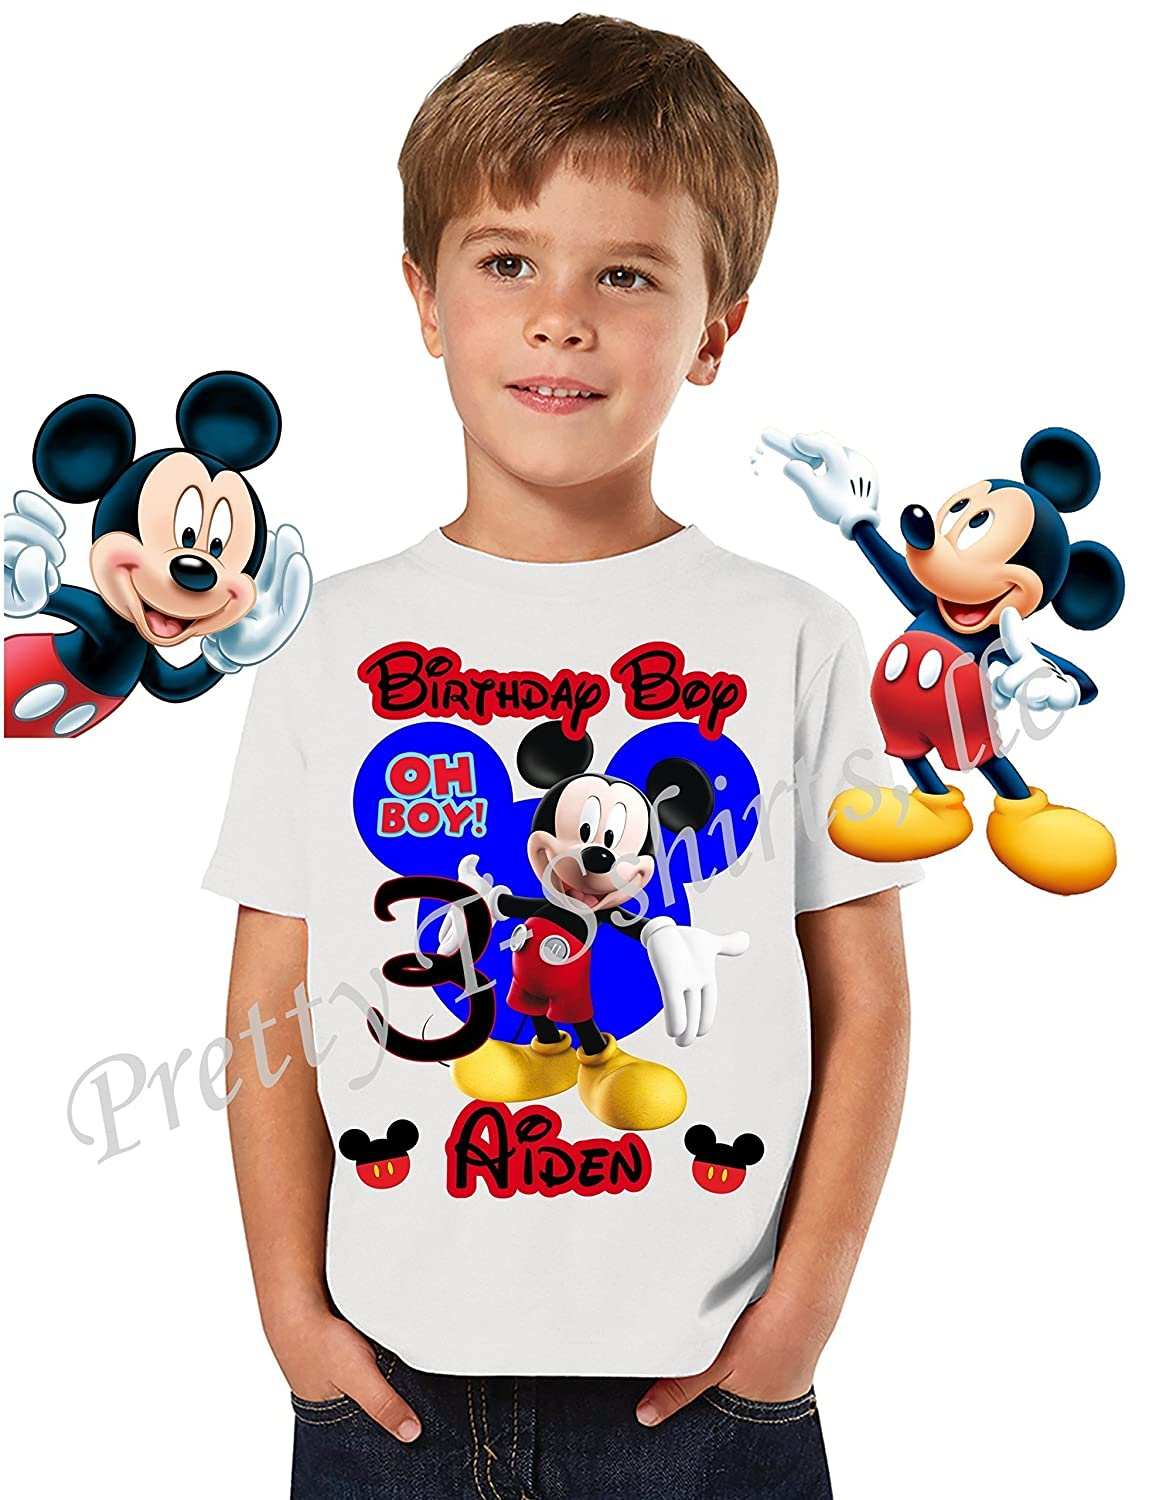 Amazon Mickey Birthday Shirt ADD Any Name Age Boy Disney FAMILY Matching Shirts Mouse OOH BOY VISIT OUR SHOP